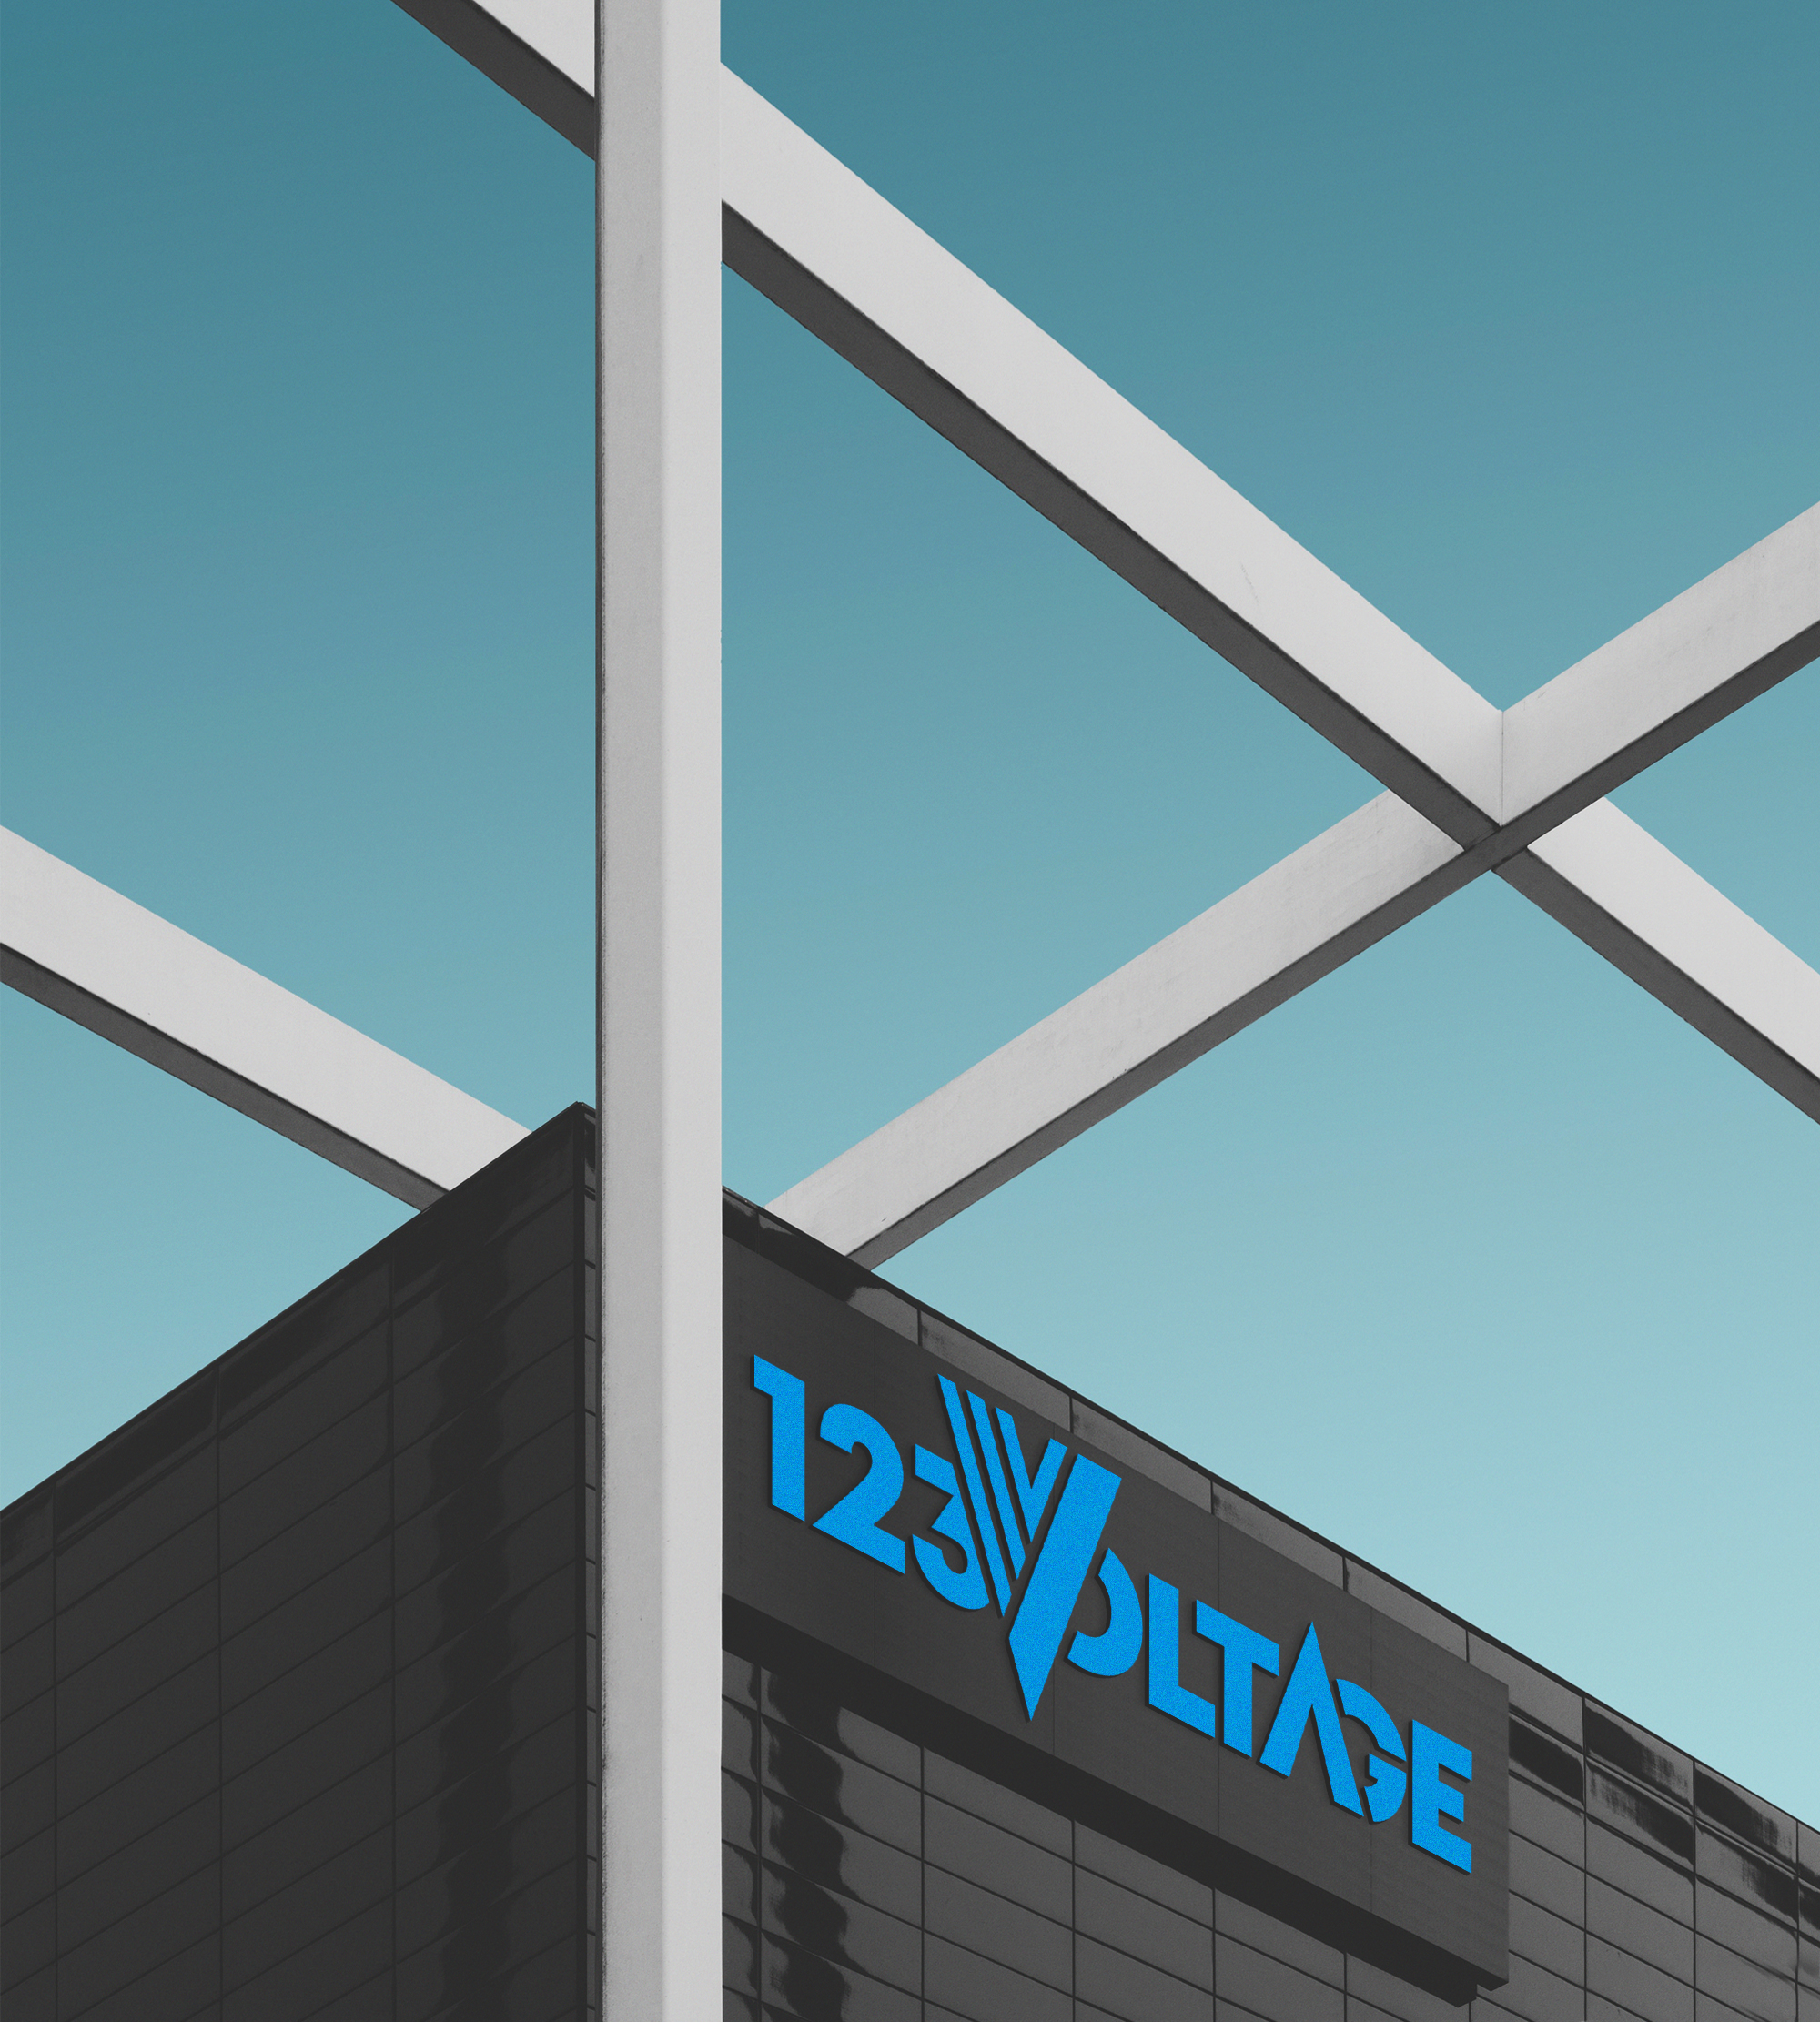 123v-logo-building-sign.jpg